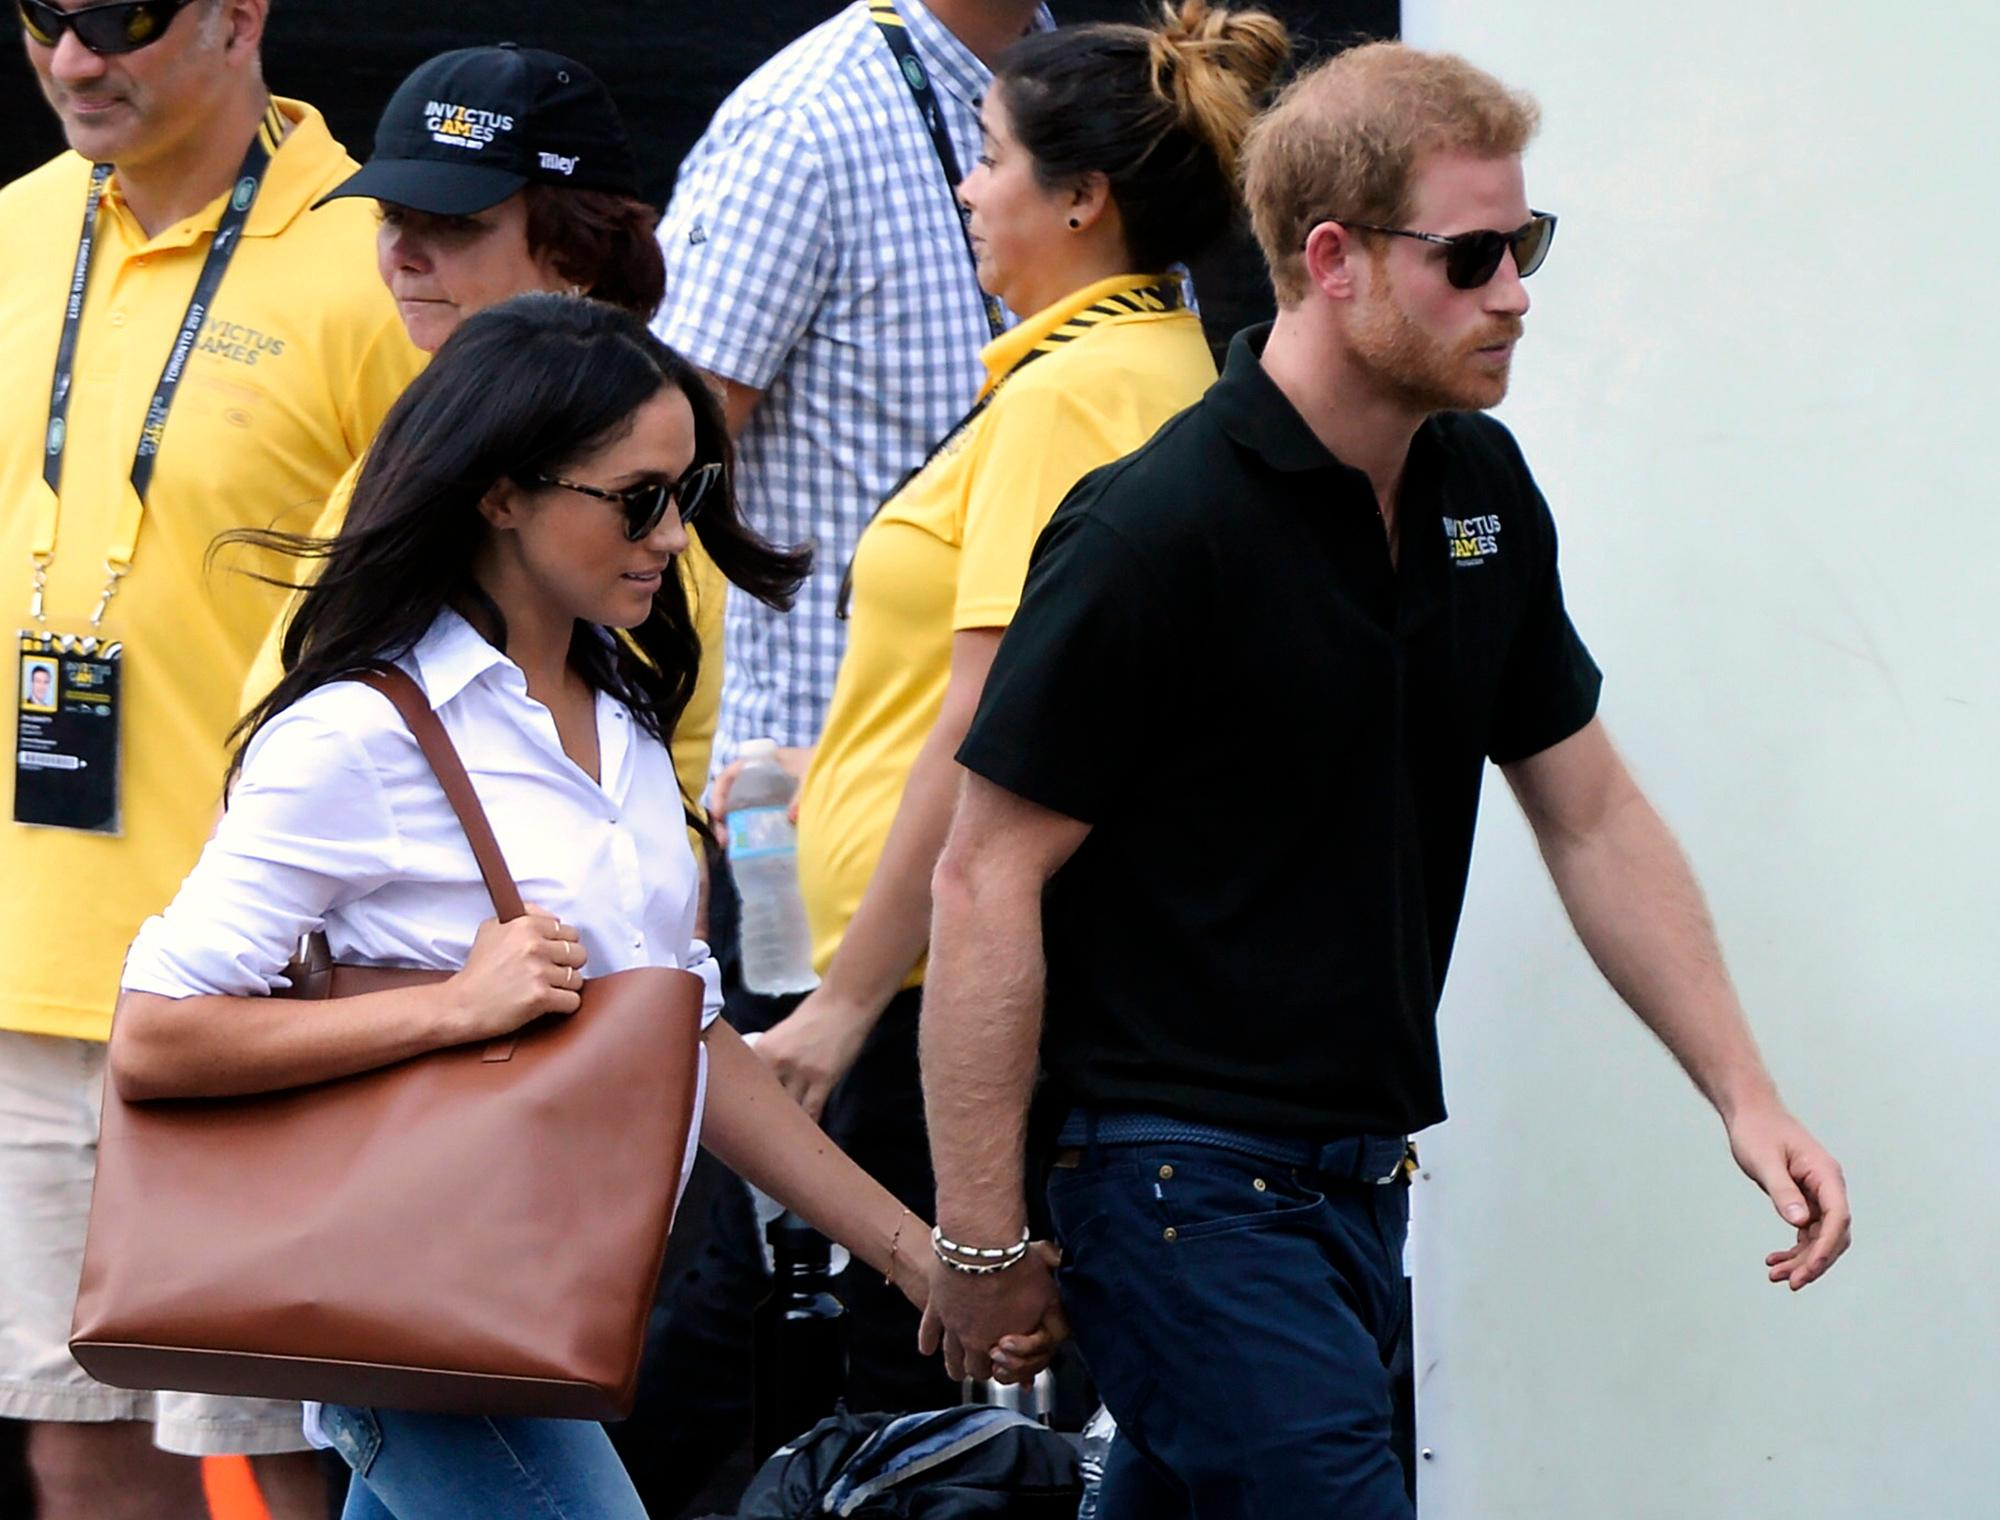 FILE - In this Monday, Sept. 25, 2017 file photo, Prince Harry and his girlfriend Meghan Markle arrive for the wheelchair tennis competition during the Invictus Games in Toronto. Palace officials announced Monday Nov. 27, 2017, Prince Harry and Meghan Markle are engaged, and will marry in the spring. (Nathan Denette/The Canadian Press via AP, File)